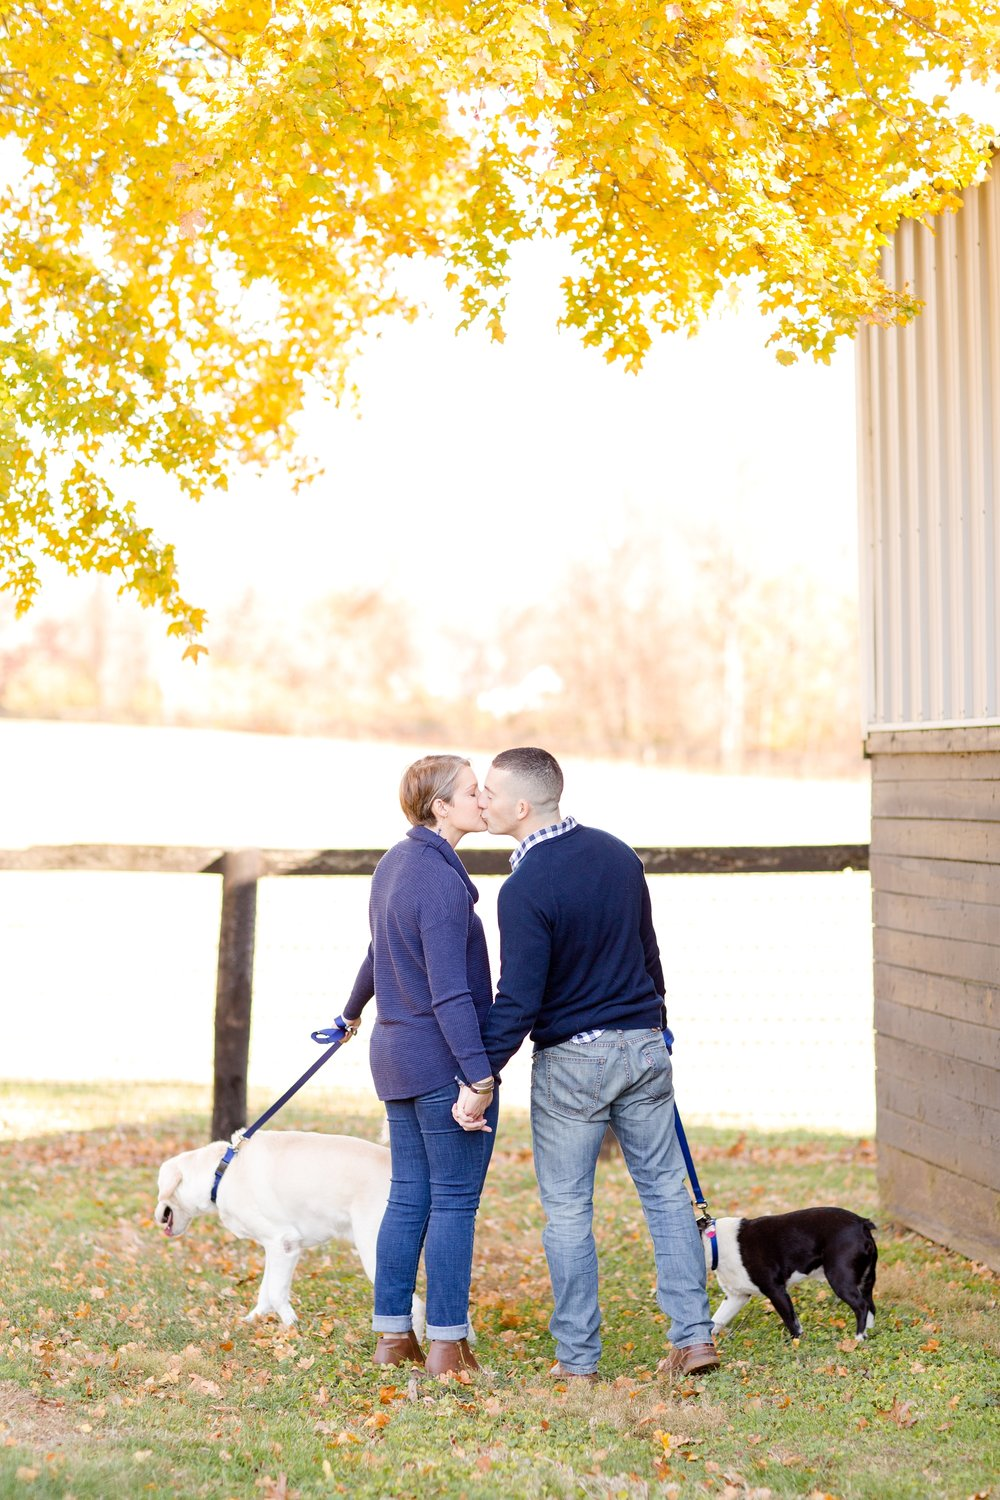 Emily & Joe Engaged-185_anna grace photography baltimore maryland wedding and engagement photographer helmore farm photo.jpg